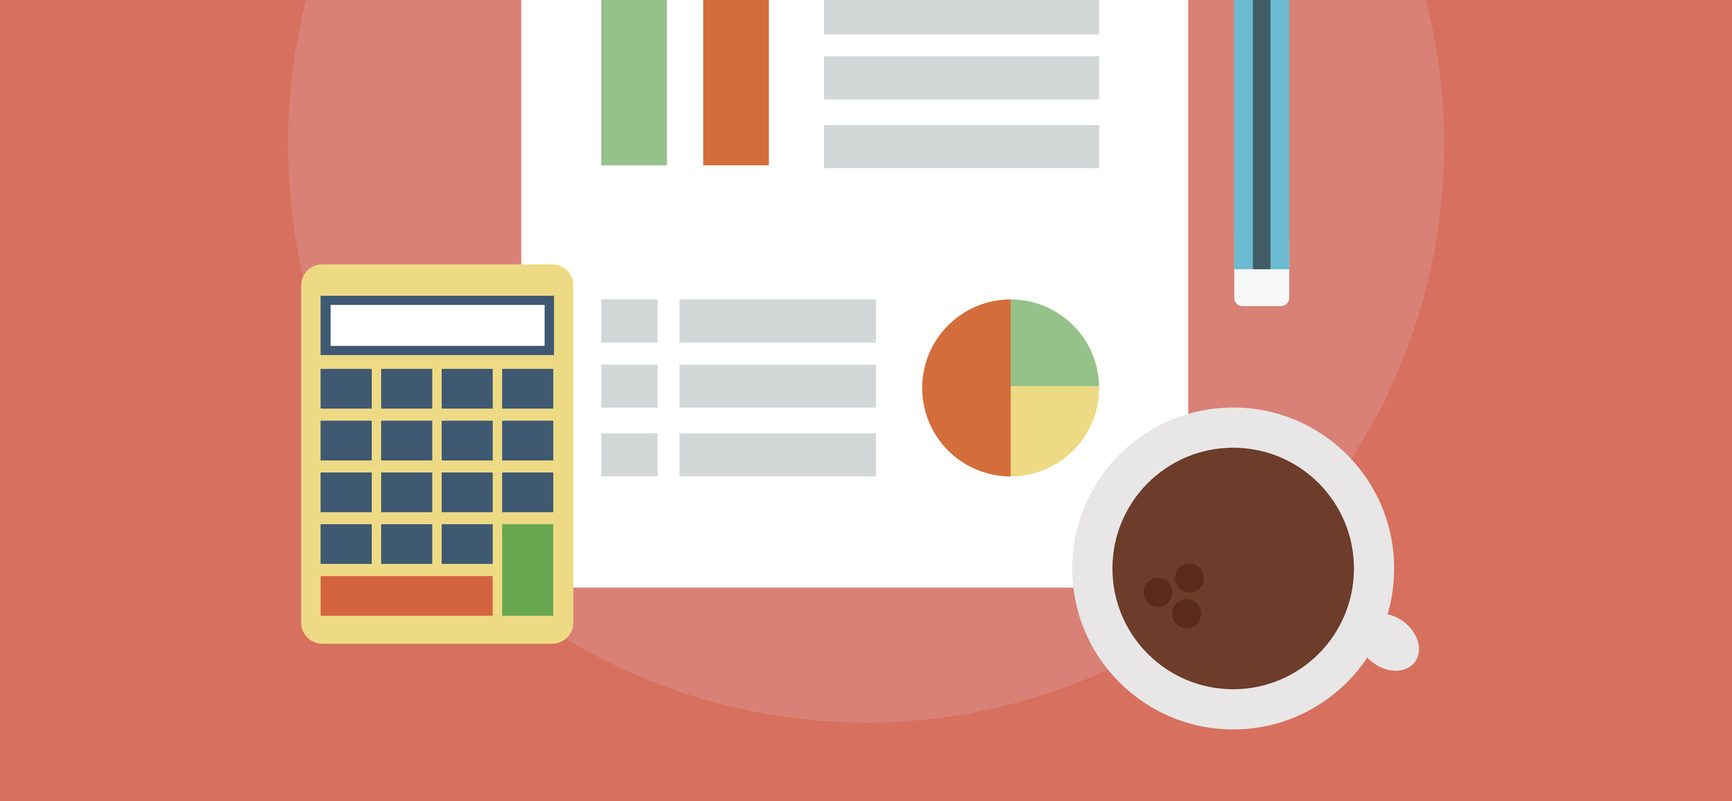 Illustration of calculator, financial statement, and coffee cup